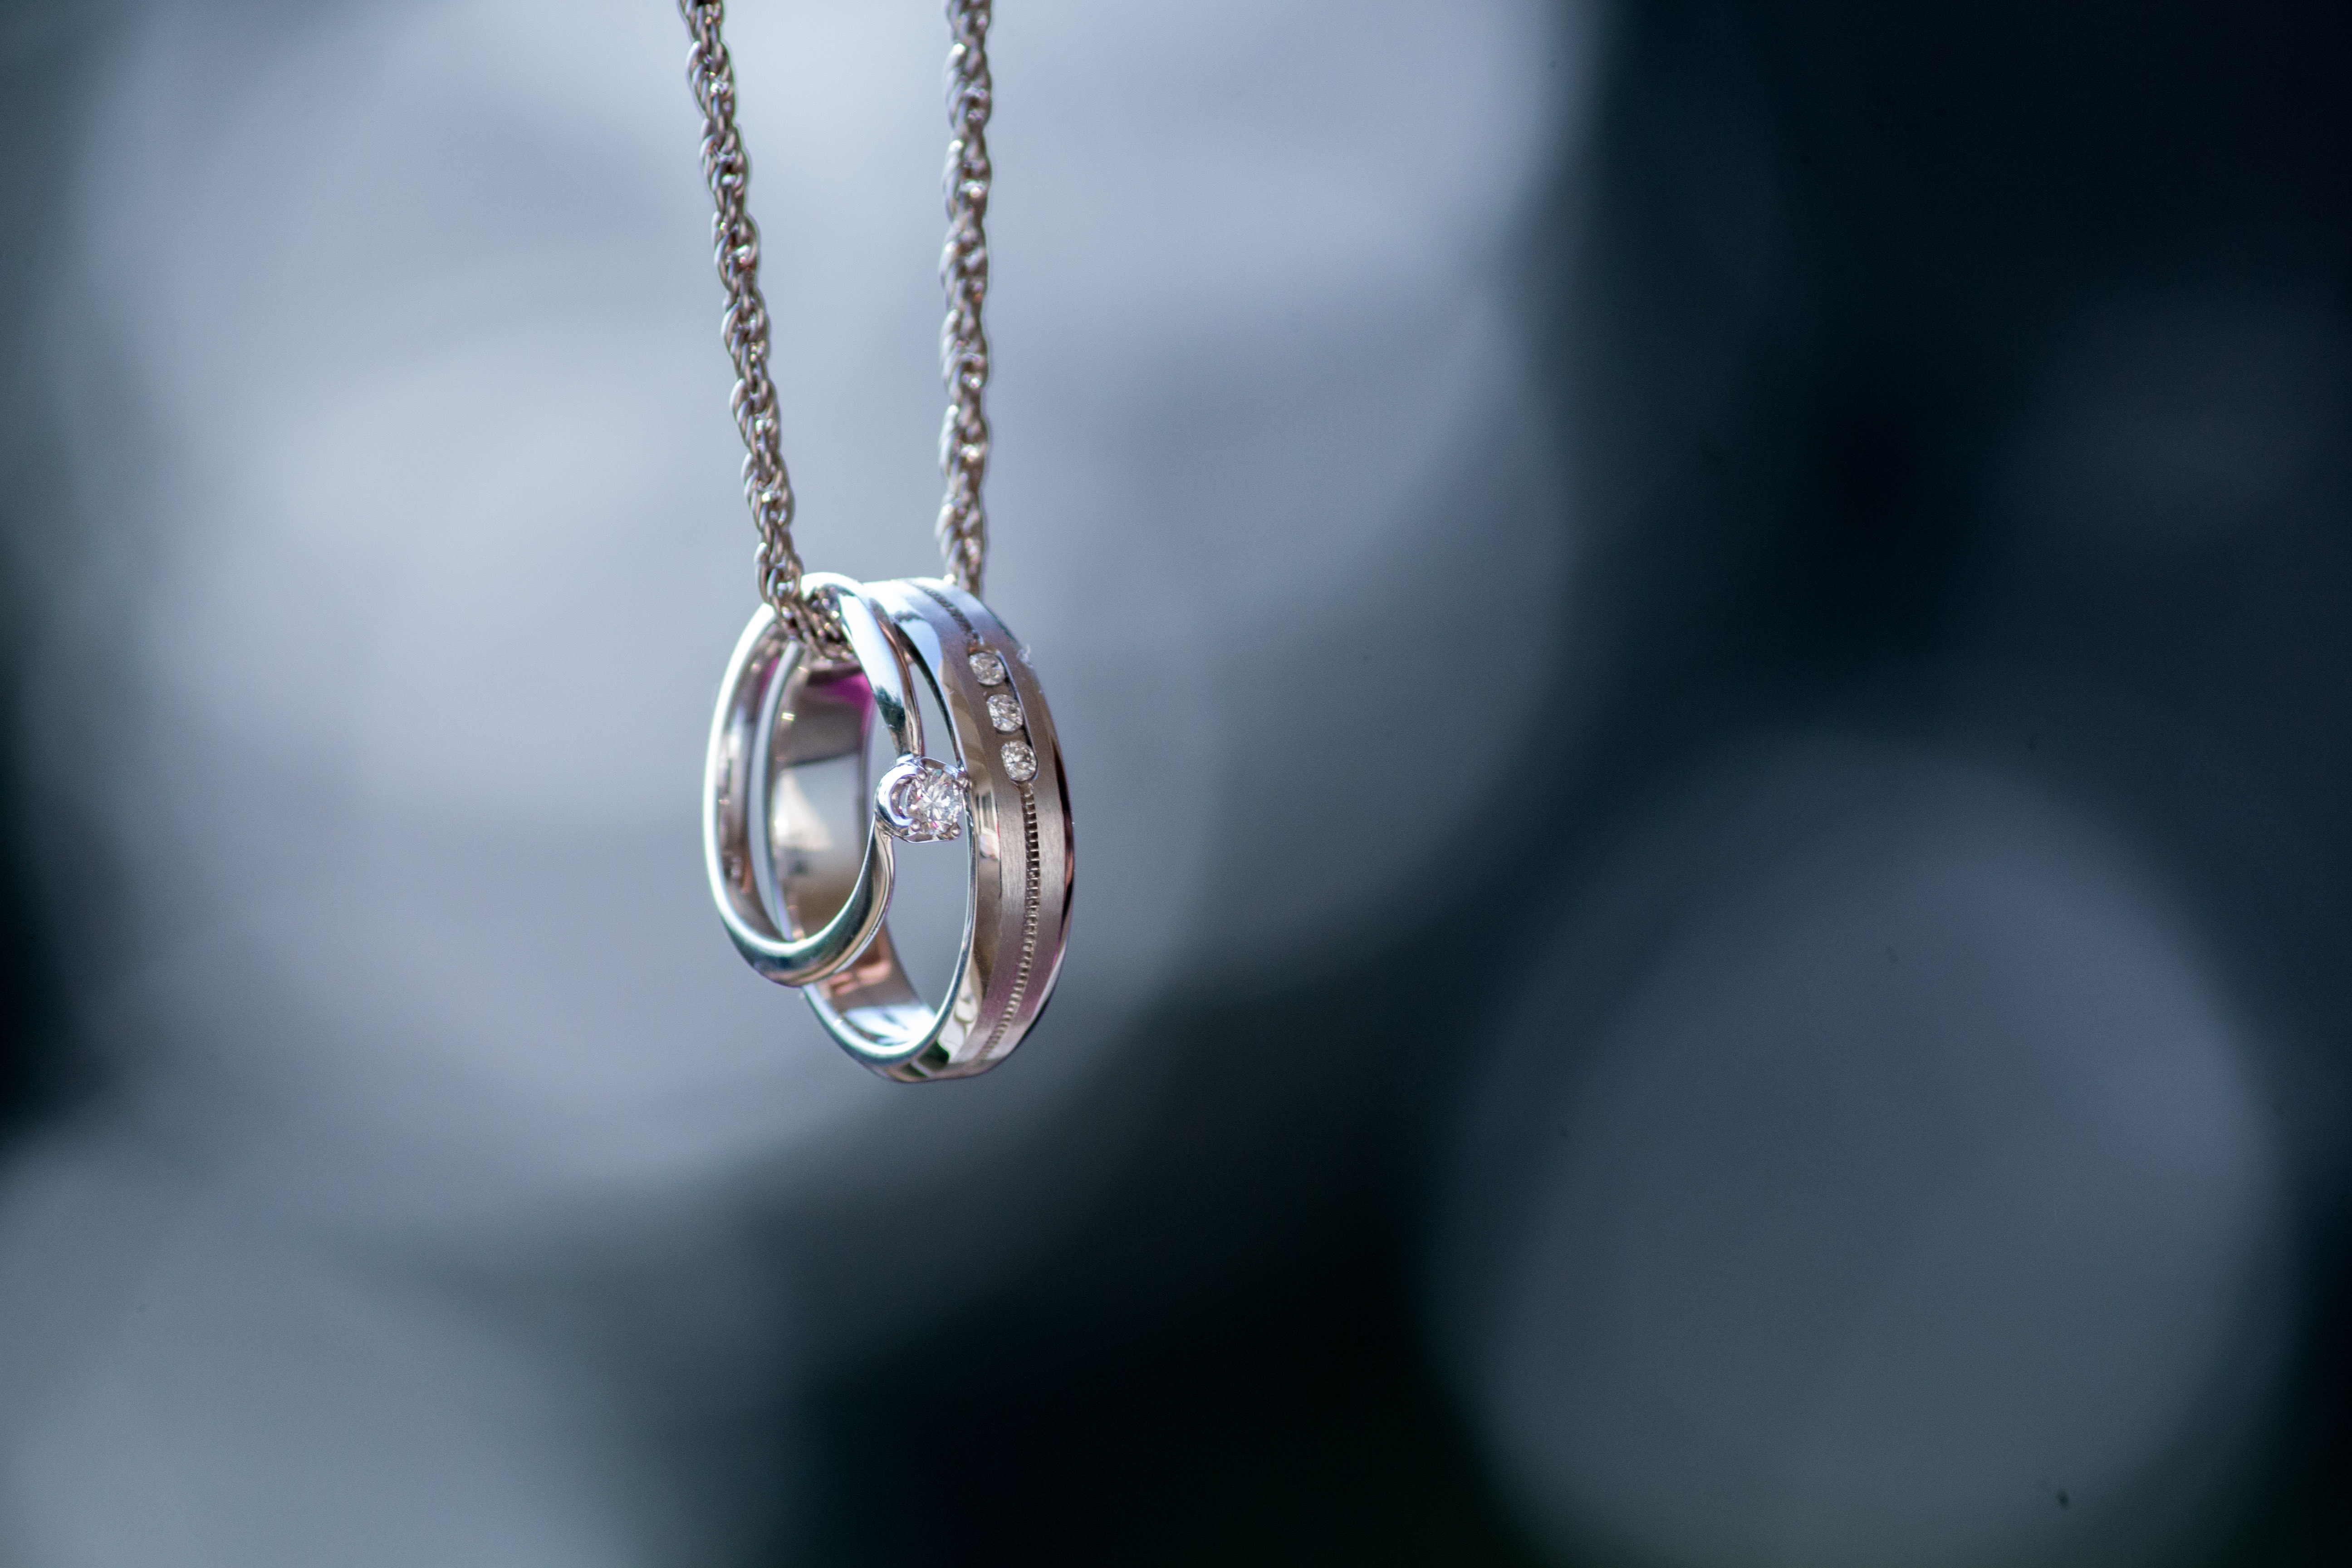 Rings on chain